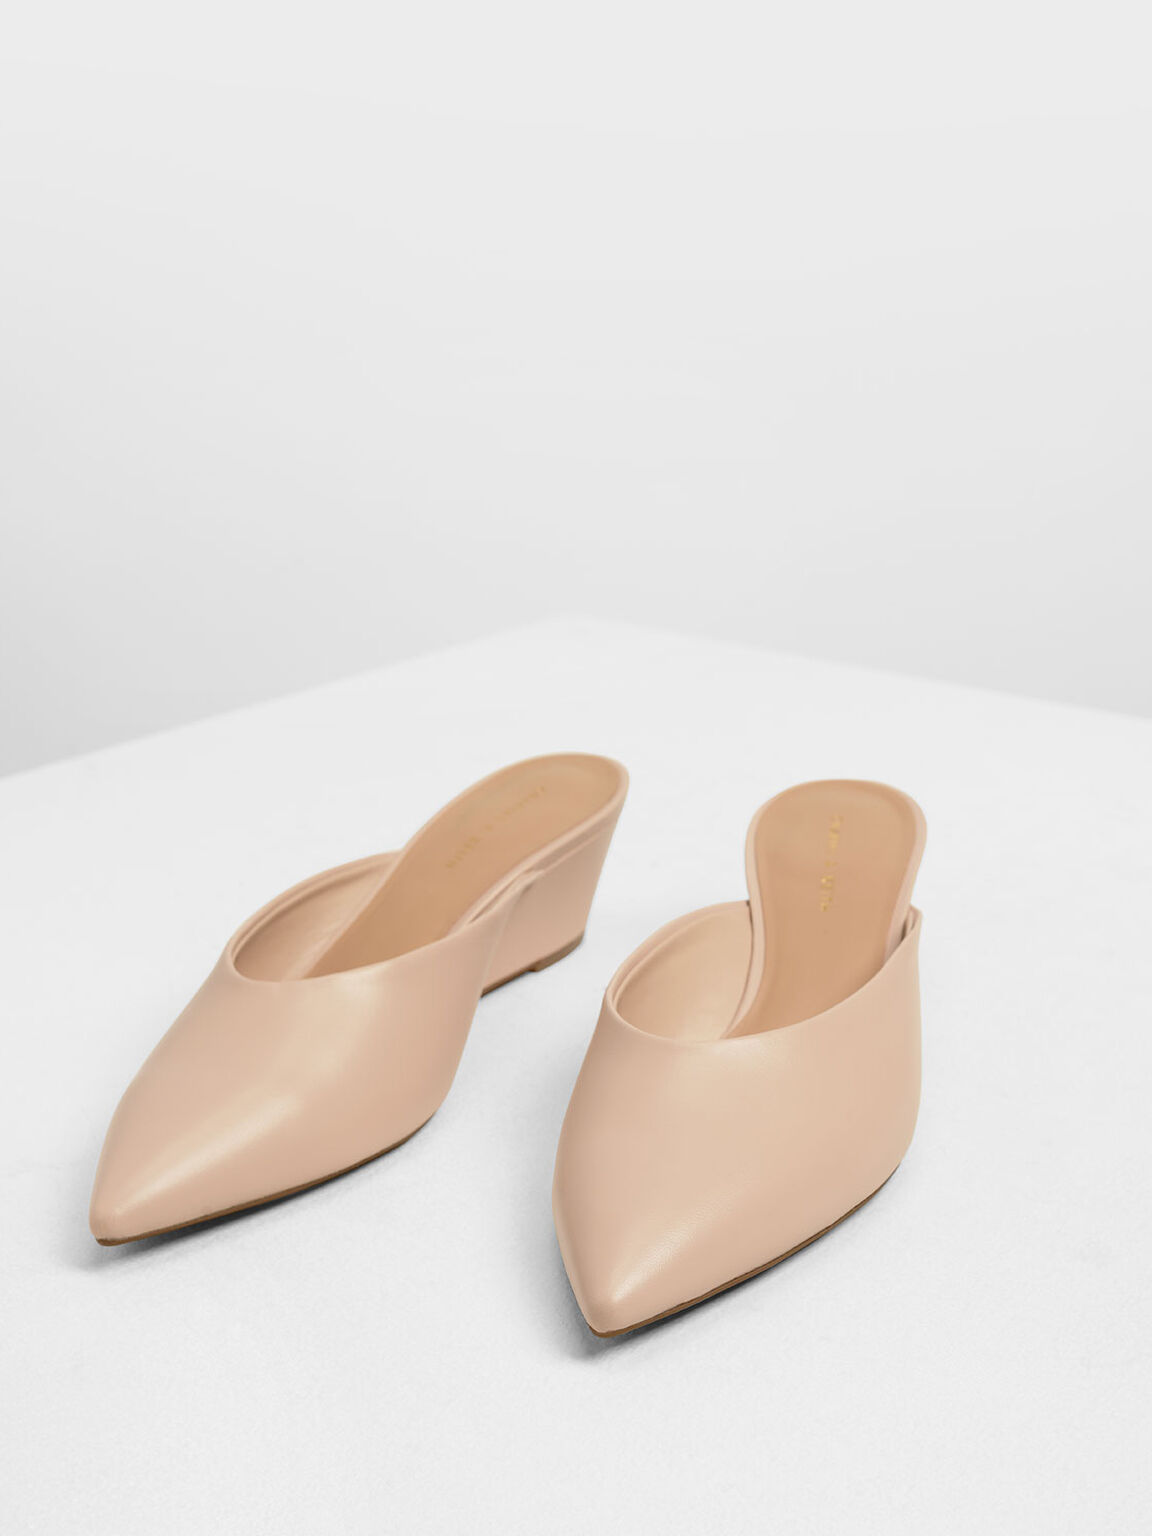 V-cut Wedges, Nude, hi-res